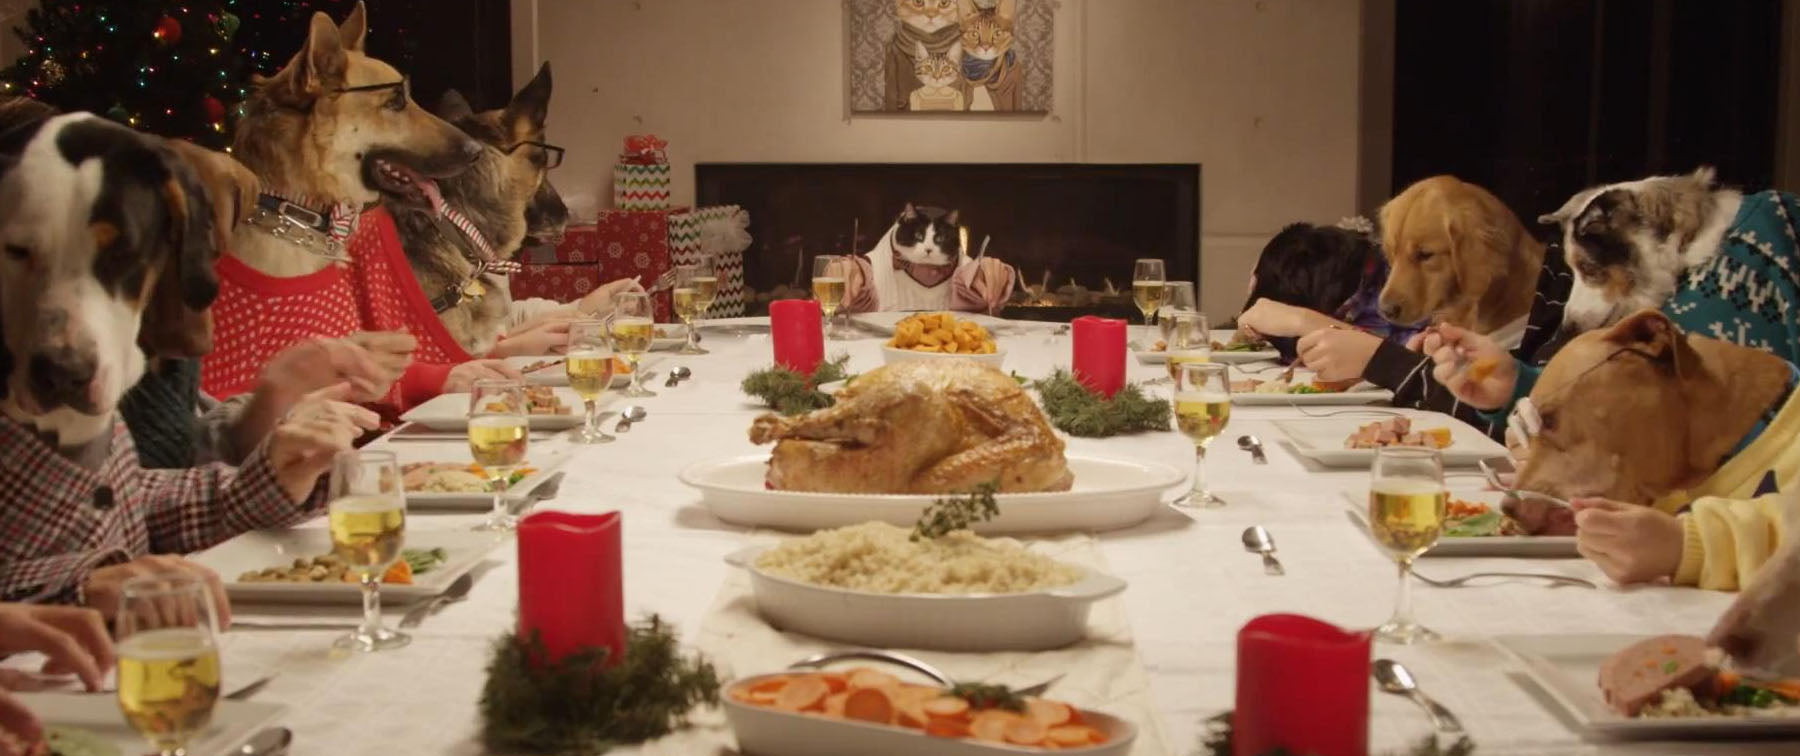 Christmas Dinner: The Dog Do's and Dont's